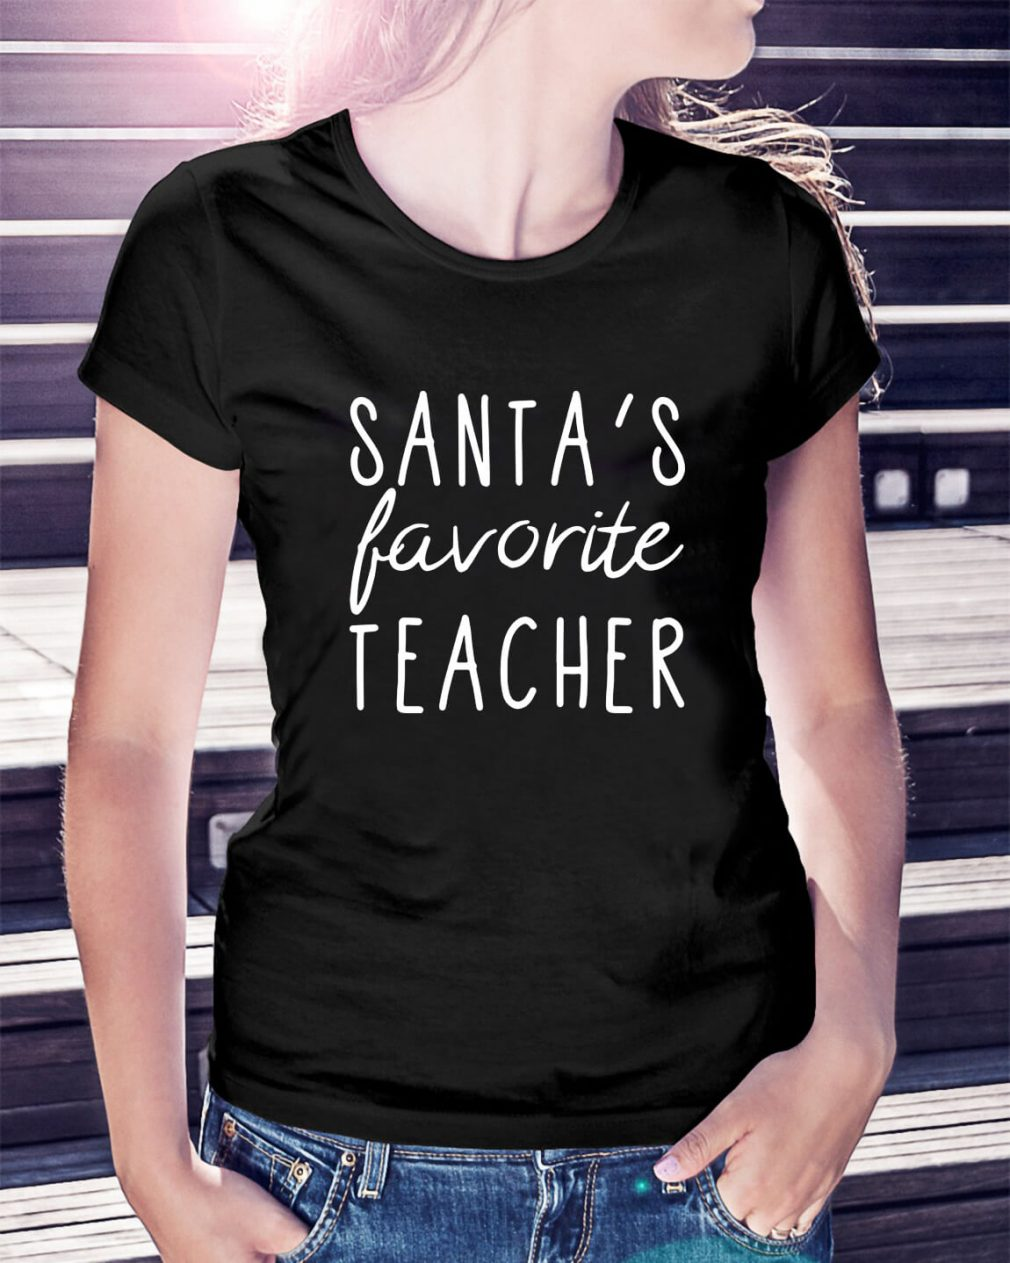 Santa's favorite teacher Ladies Tee